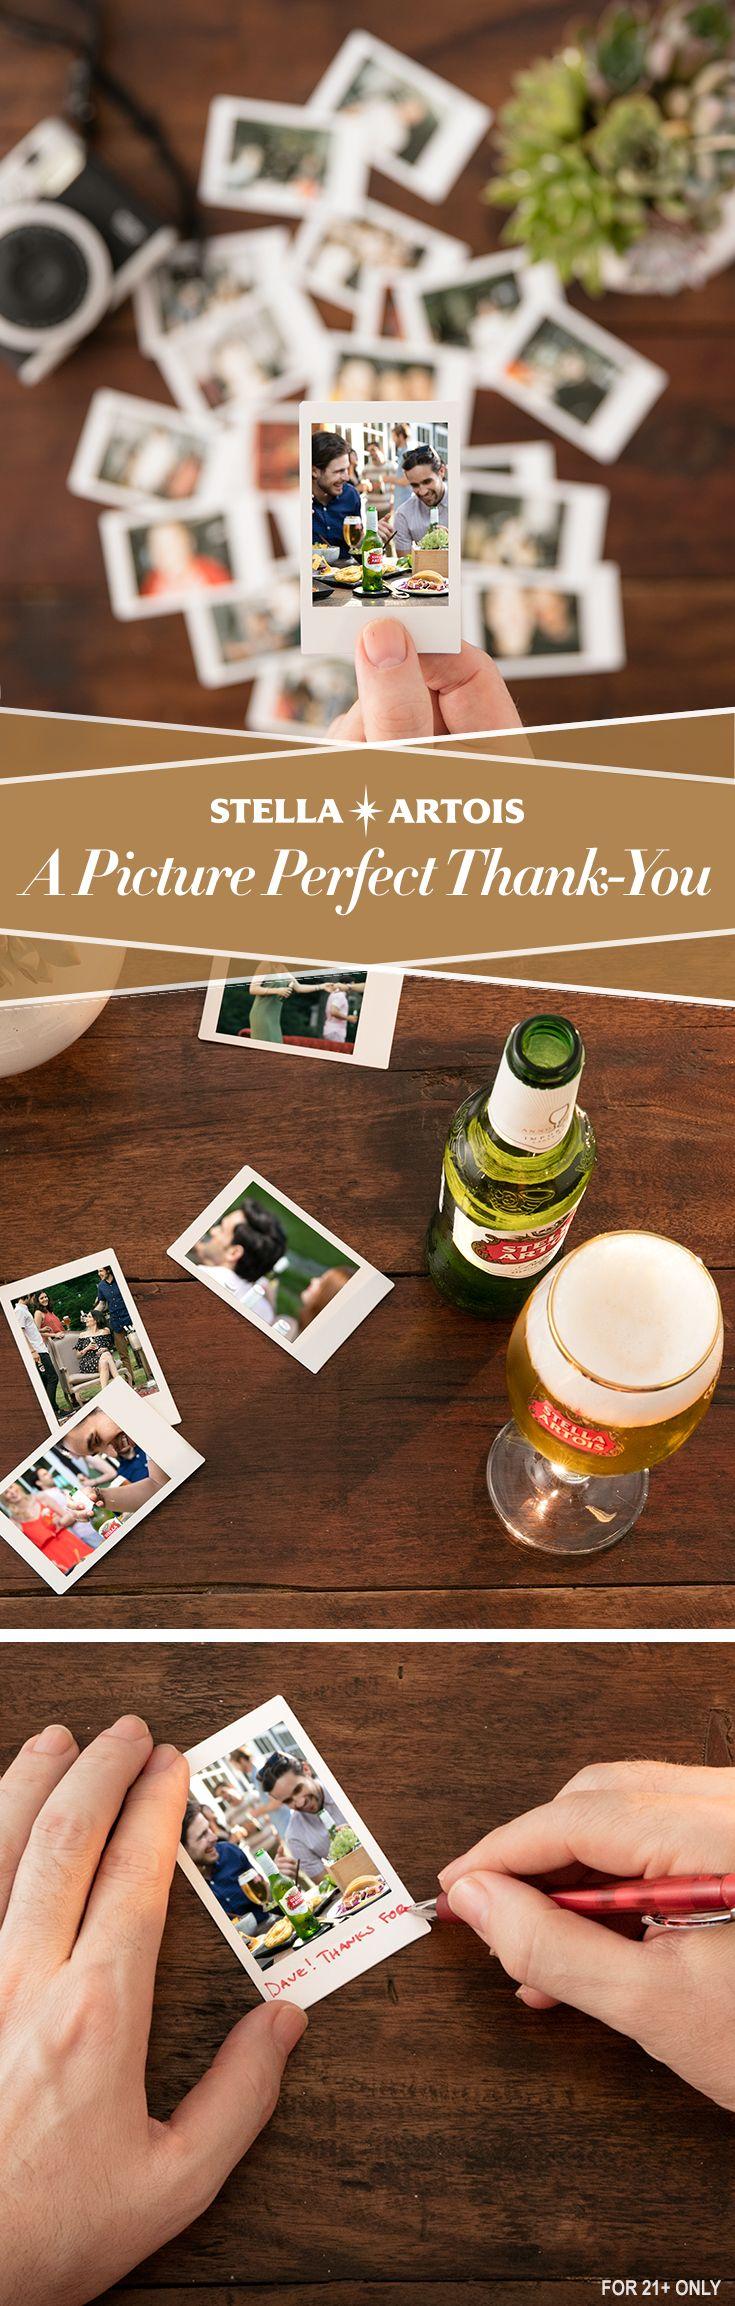 Take pictures of each of your guests with an instant film camera. After your party, send the photos to your guests as personalized thank-you cards accompanied with a Stella Artois Chalice. A simple token of gratitude can leave a lasting impression on your guests, long after your night to remember.